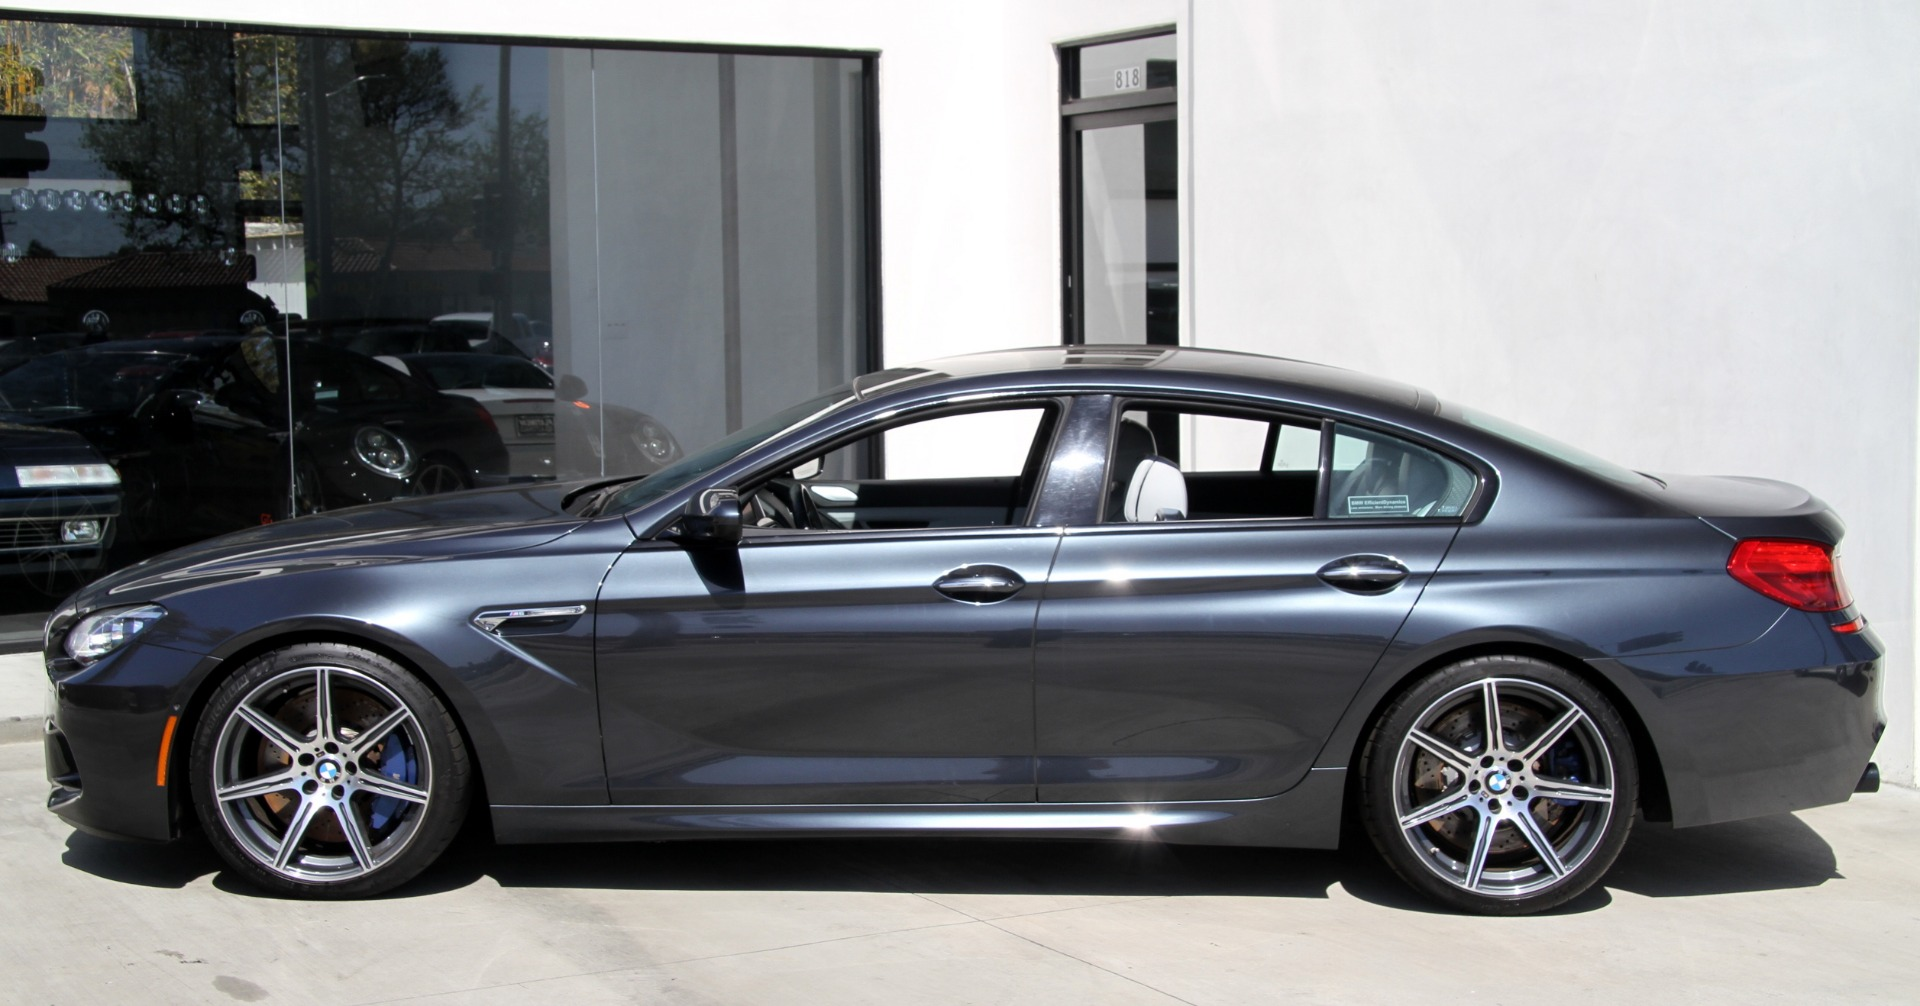 Bmw Dealer Near Me >> 2015 BMW M6 Gran Coupe ** Competition Pkg ** Stock # 6056 for sale near Redondo Beach, CA | CA ...